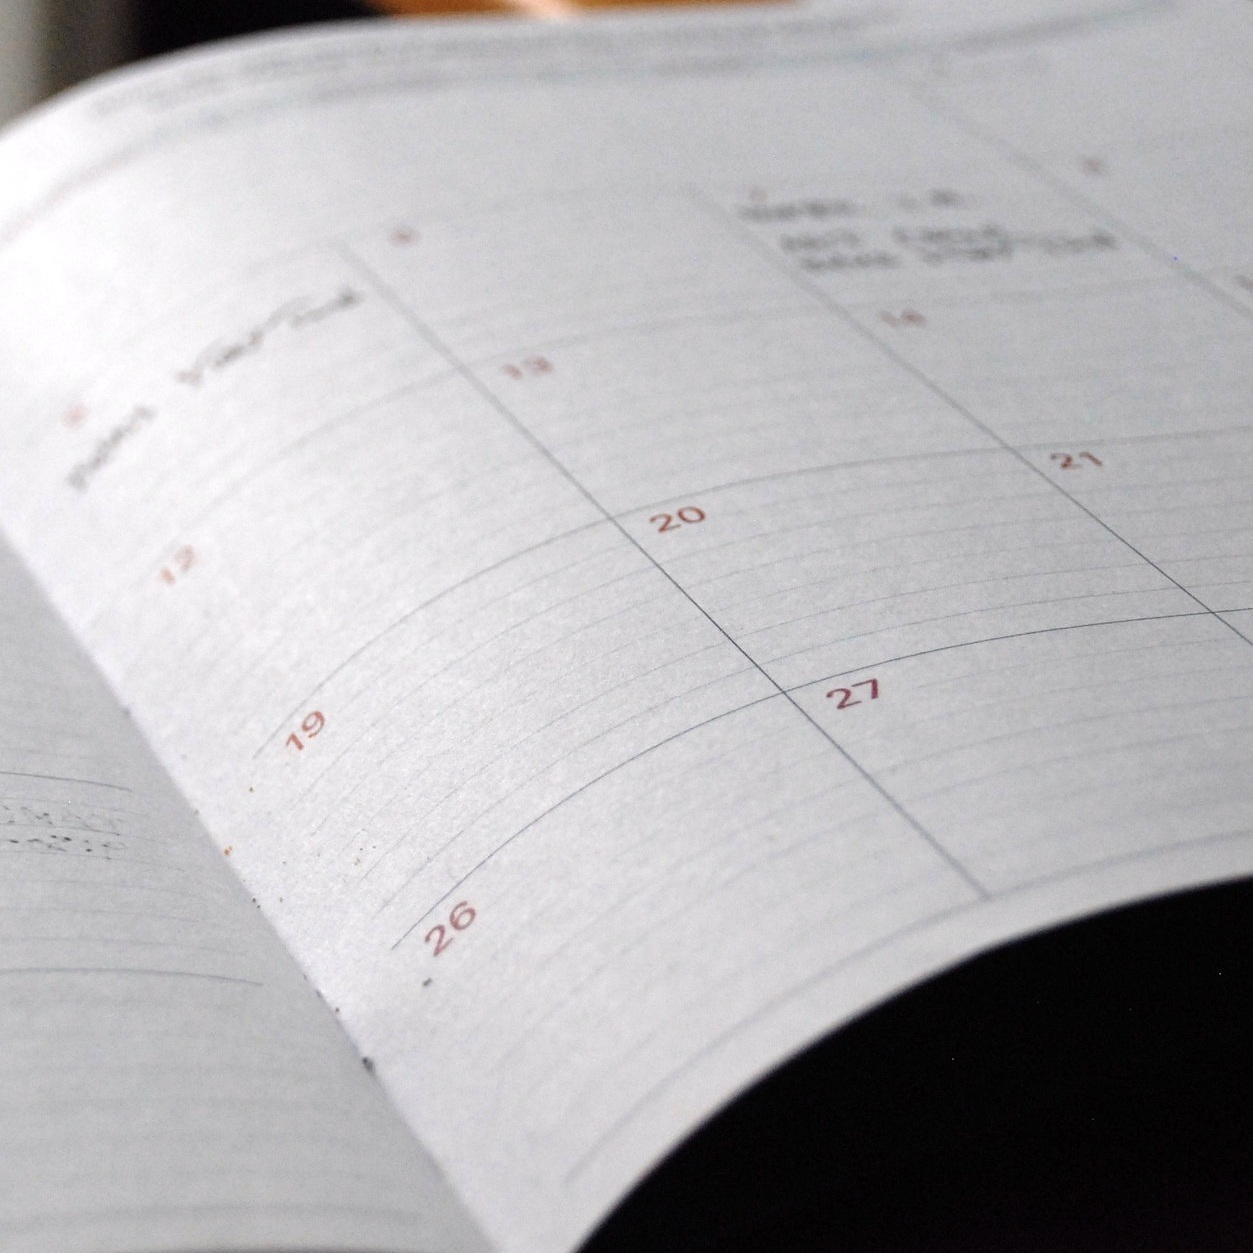 CALENDAR - See upcoming clinics